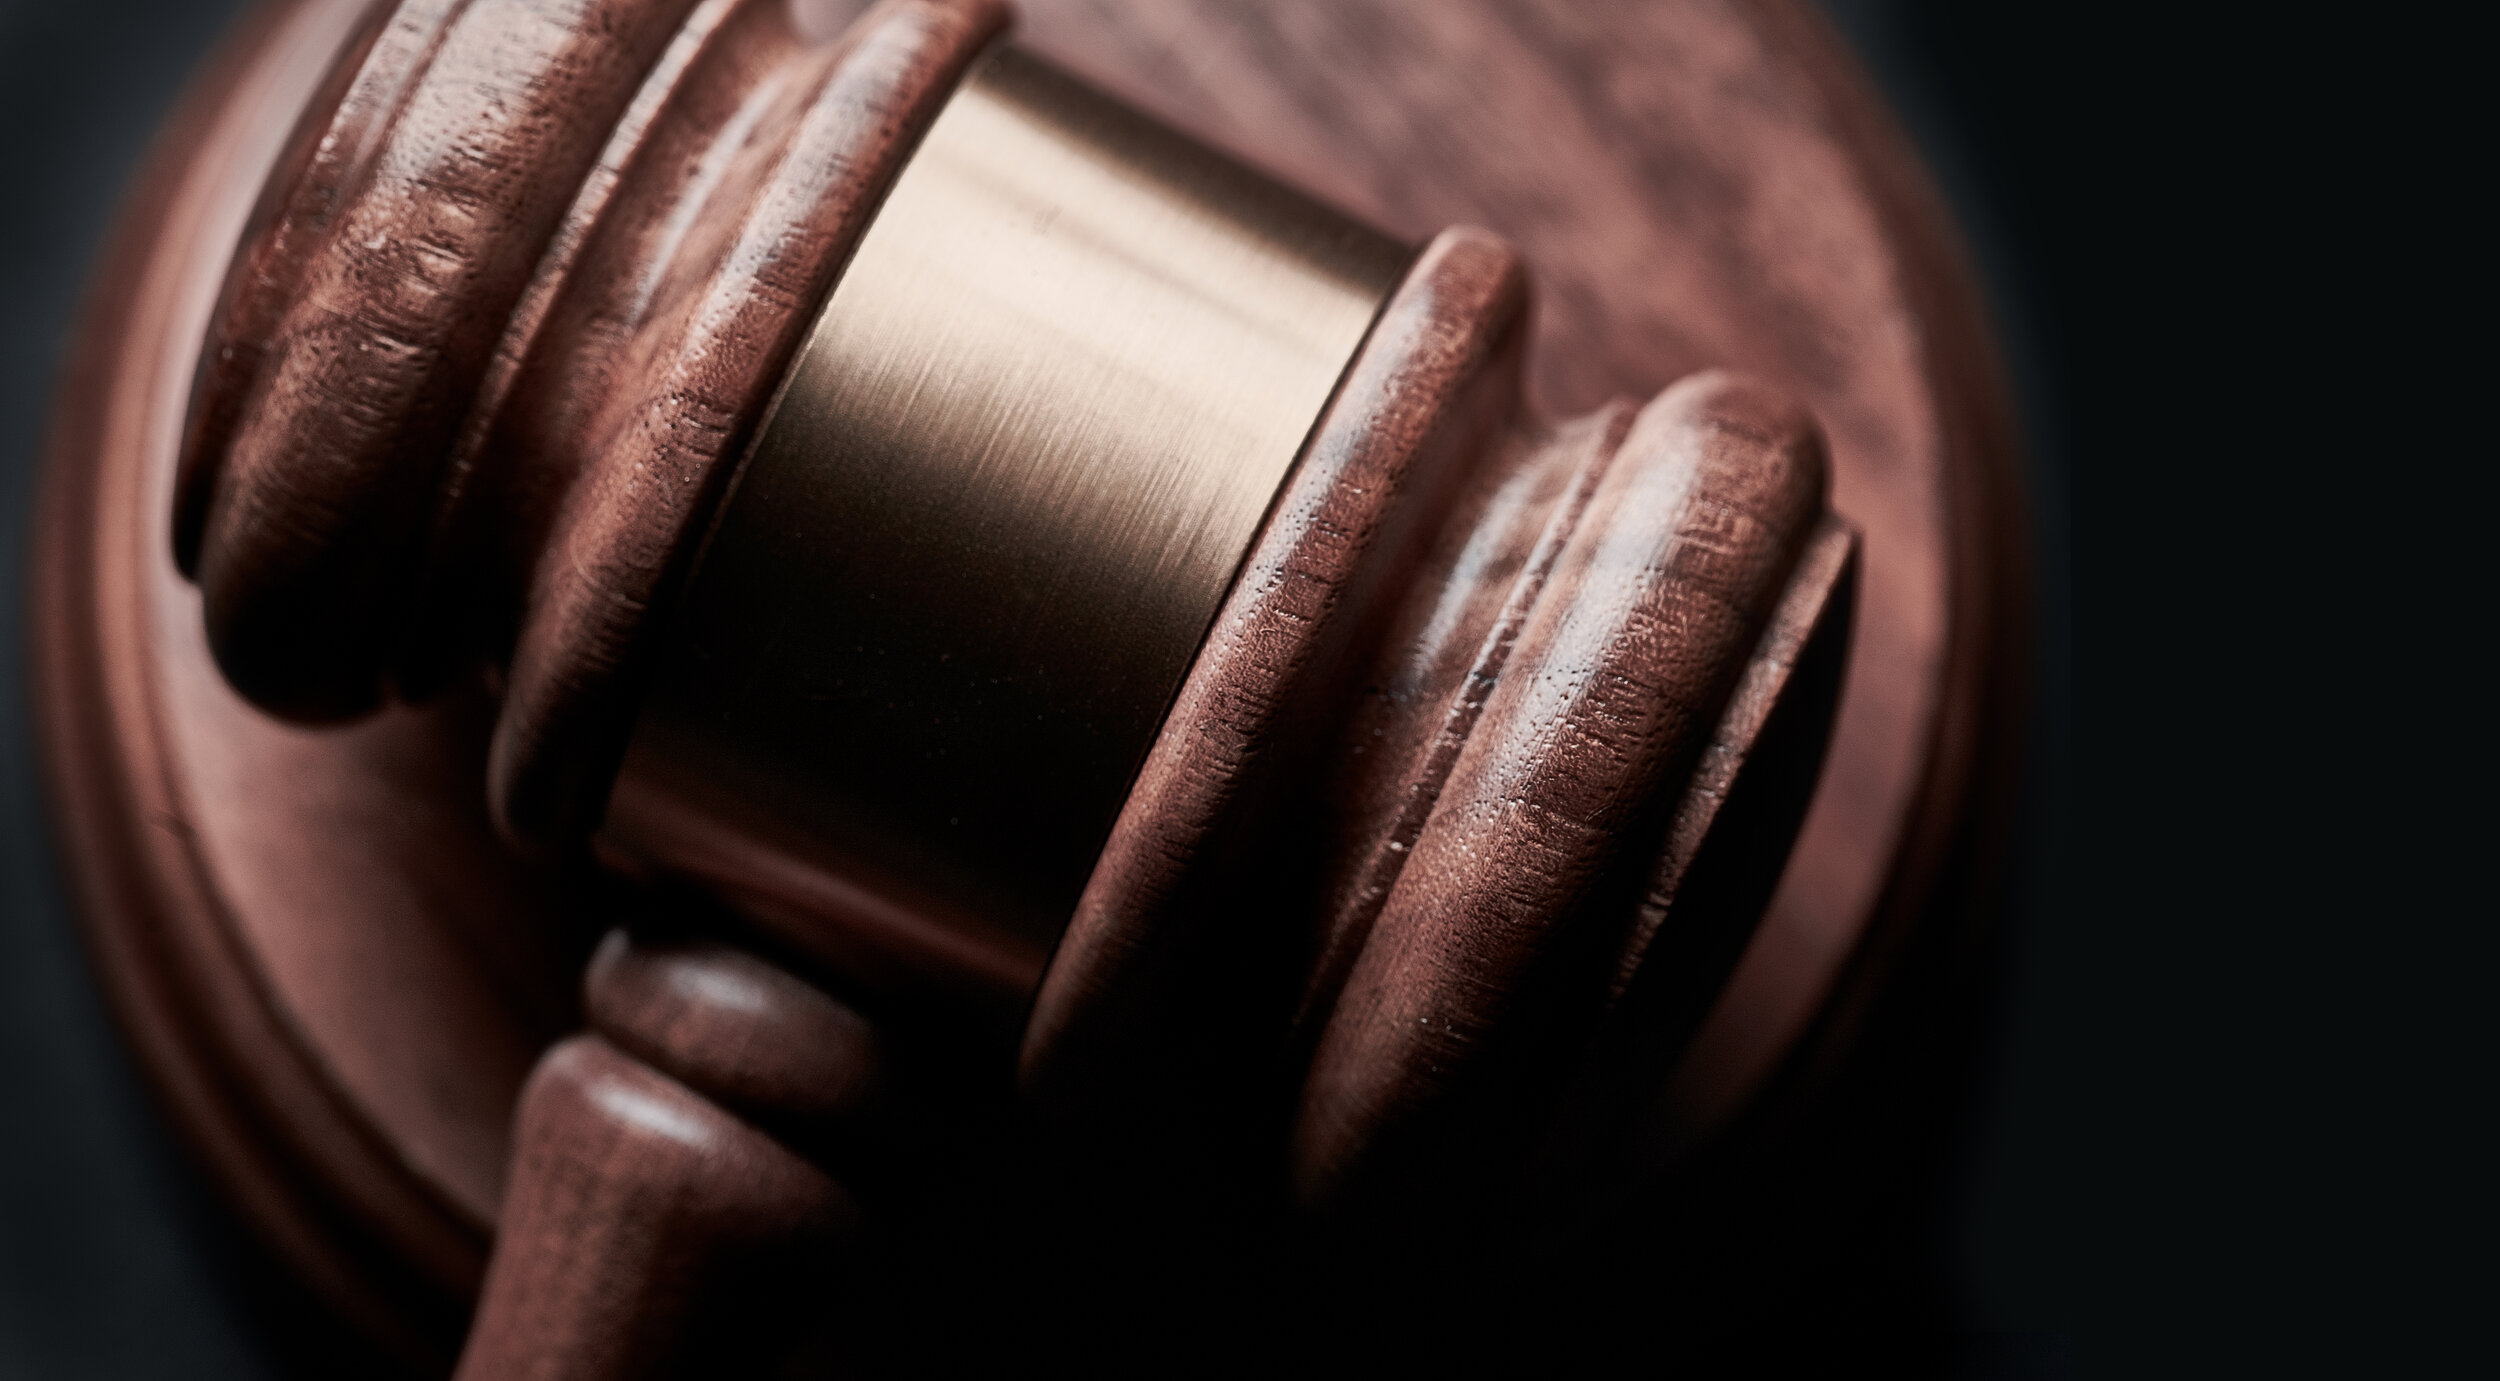 Personal Injury Lawyers And Why We Need Them